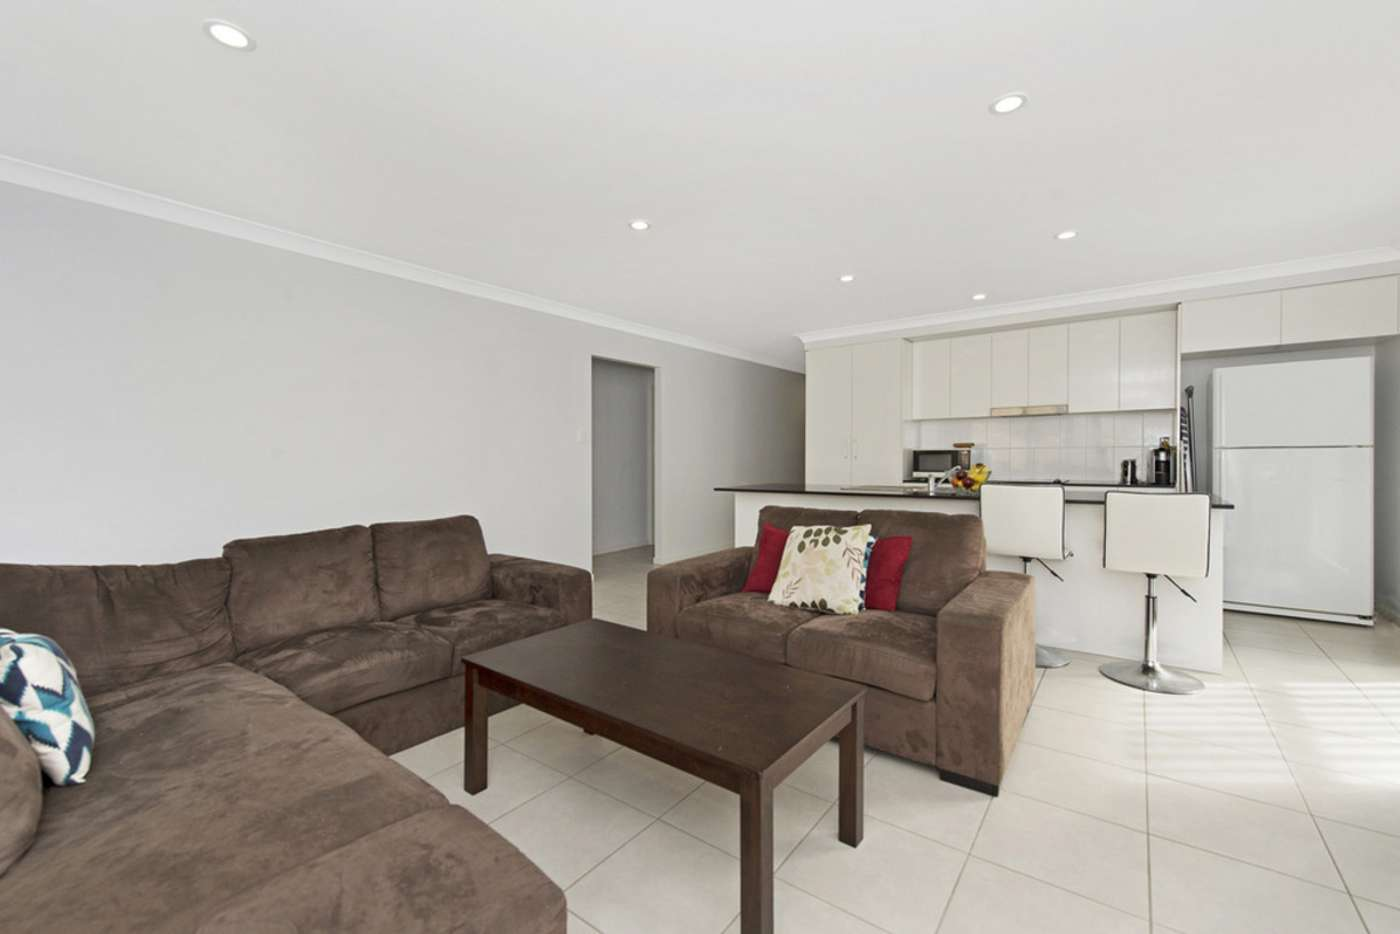 Sixth view of Homely house listing, 18 Hollanders Crescent, Ormeau Hills QLD 4208